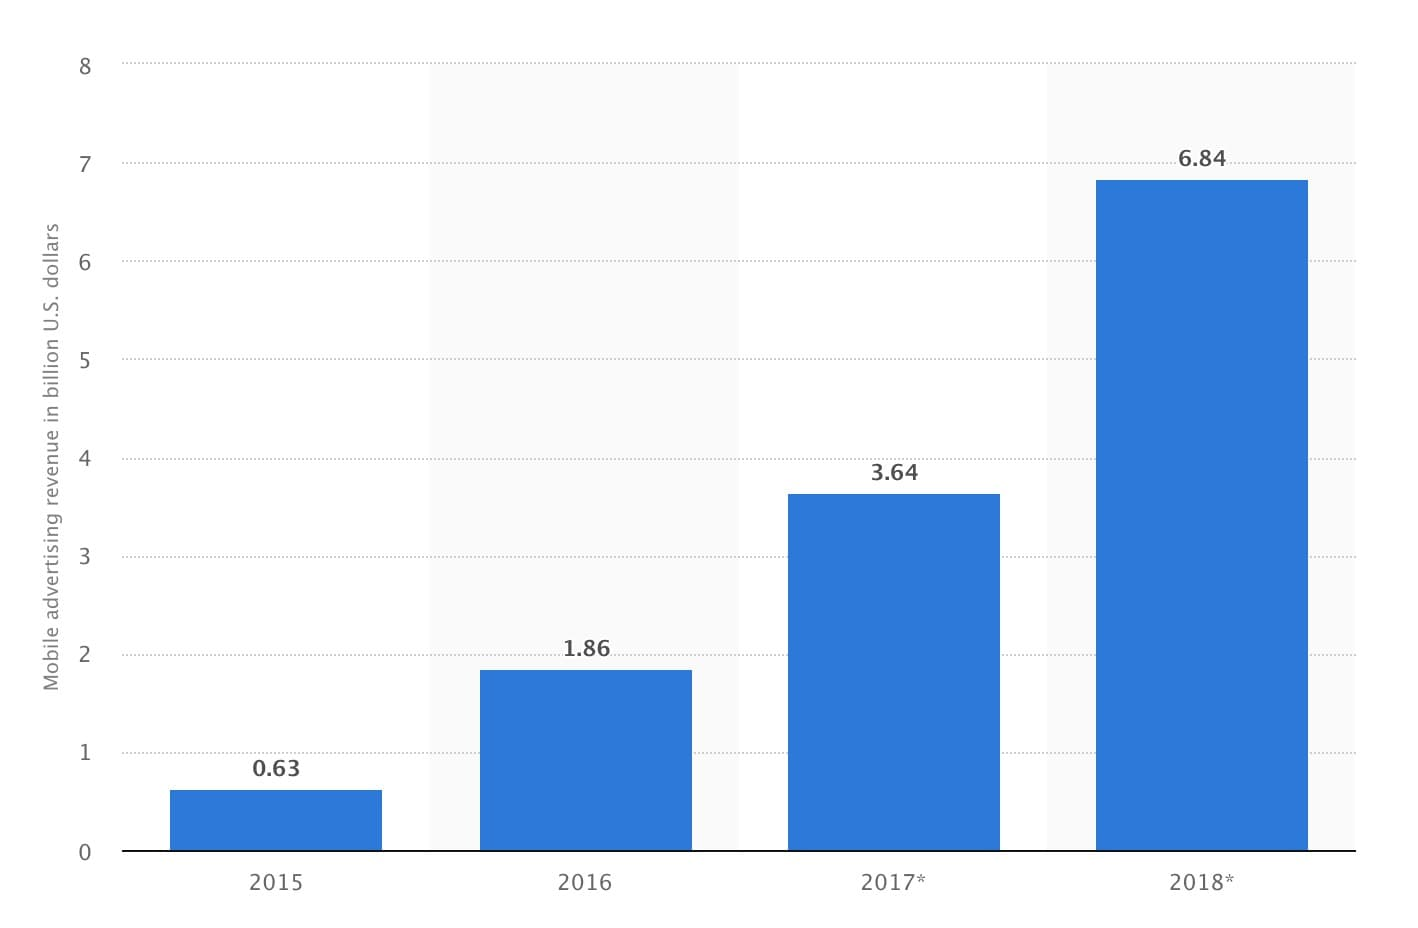 Advertising revenue of Instagram from 2015 to 2018